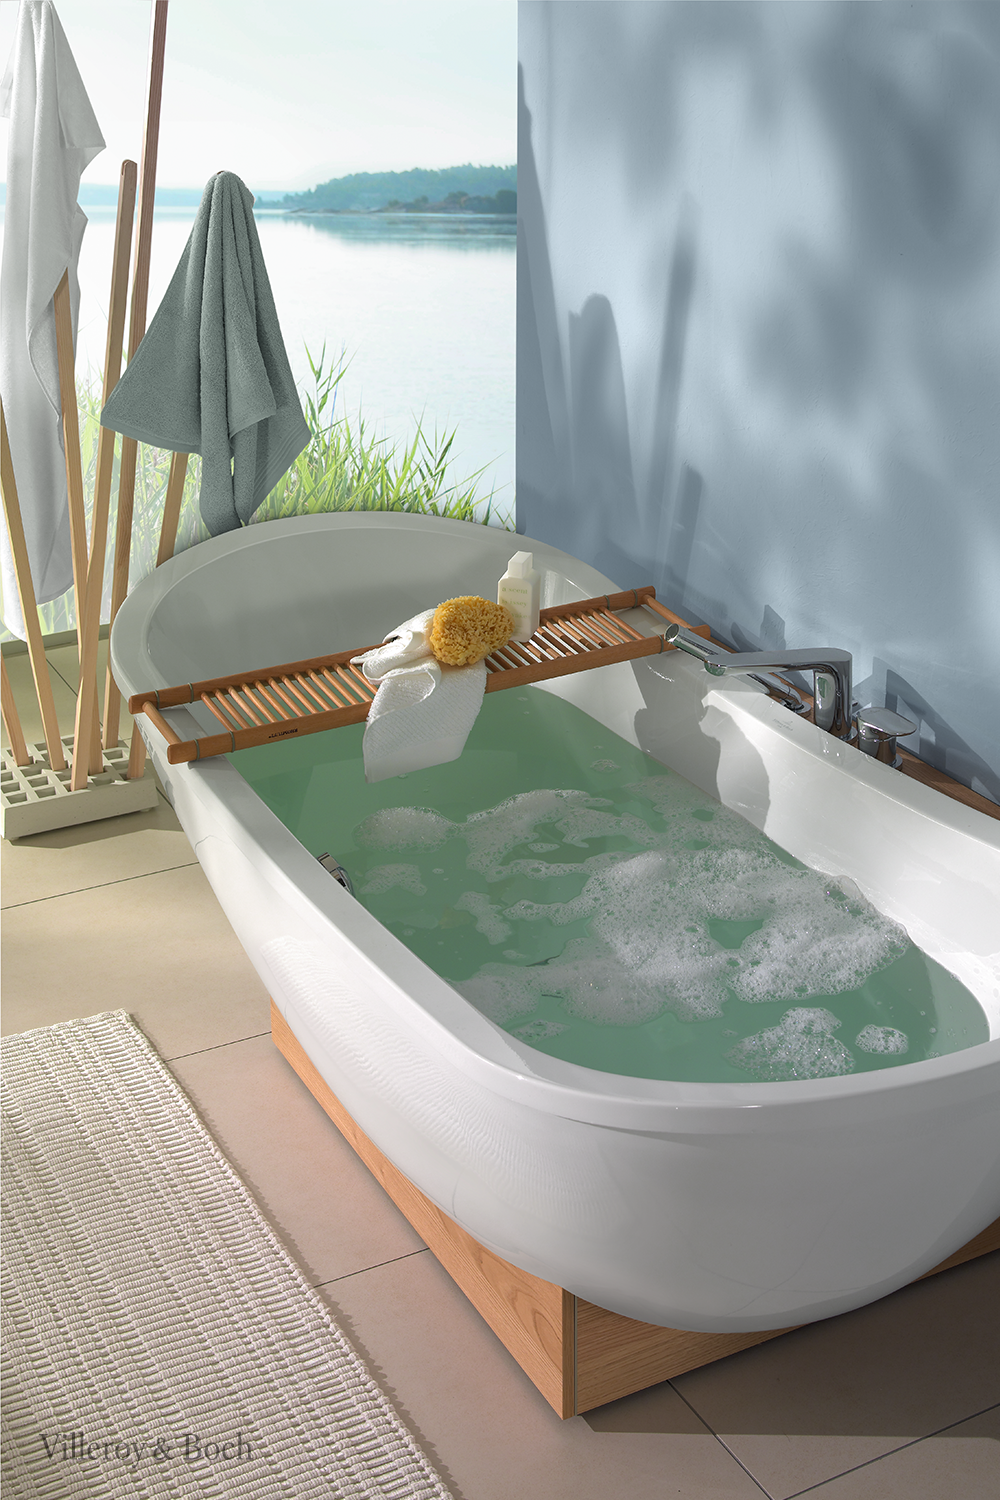 Choose This Freestanding Bathtub To Switch On Vacation Mode At Home In 2020 Badewanne Badezimmer Badezimmer Natur